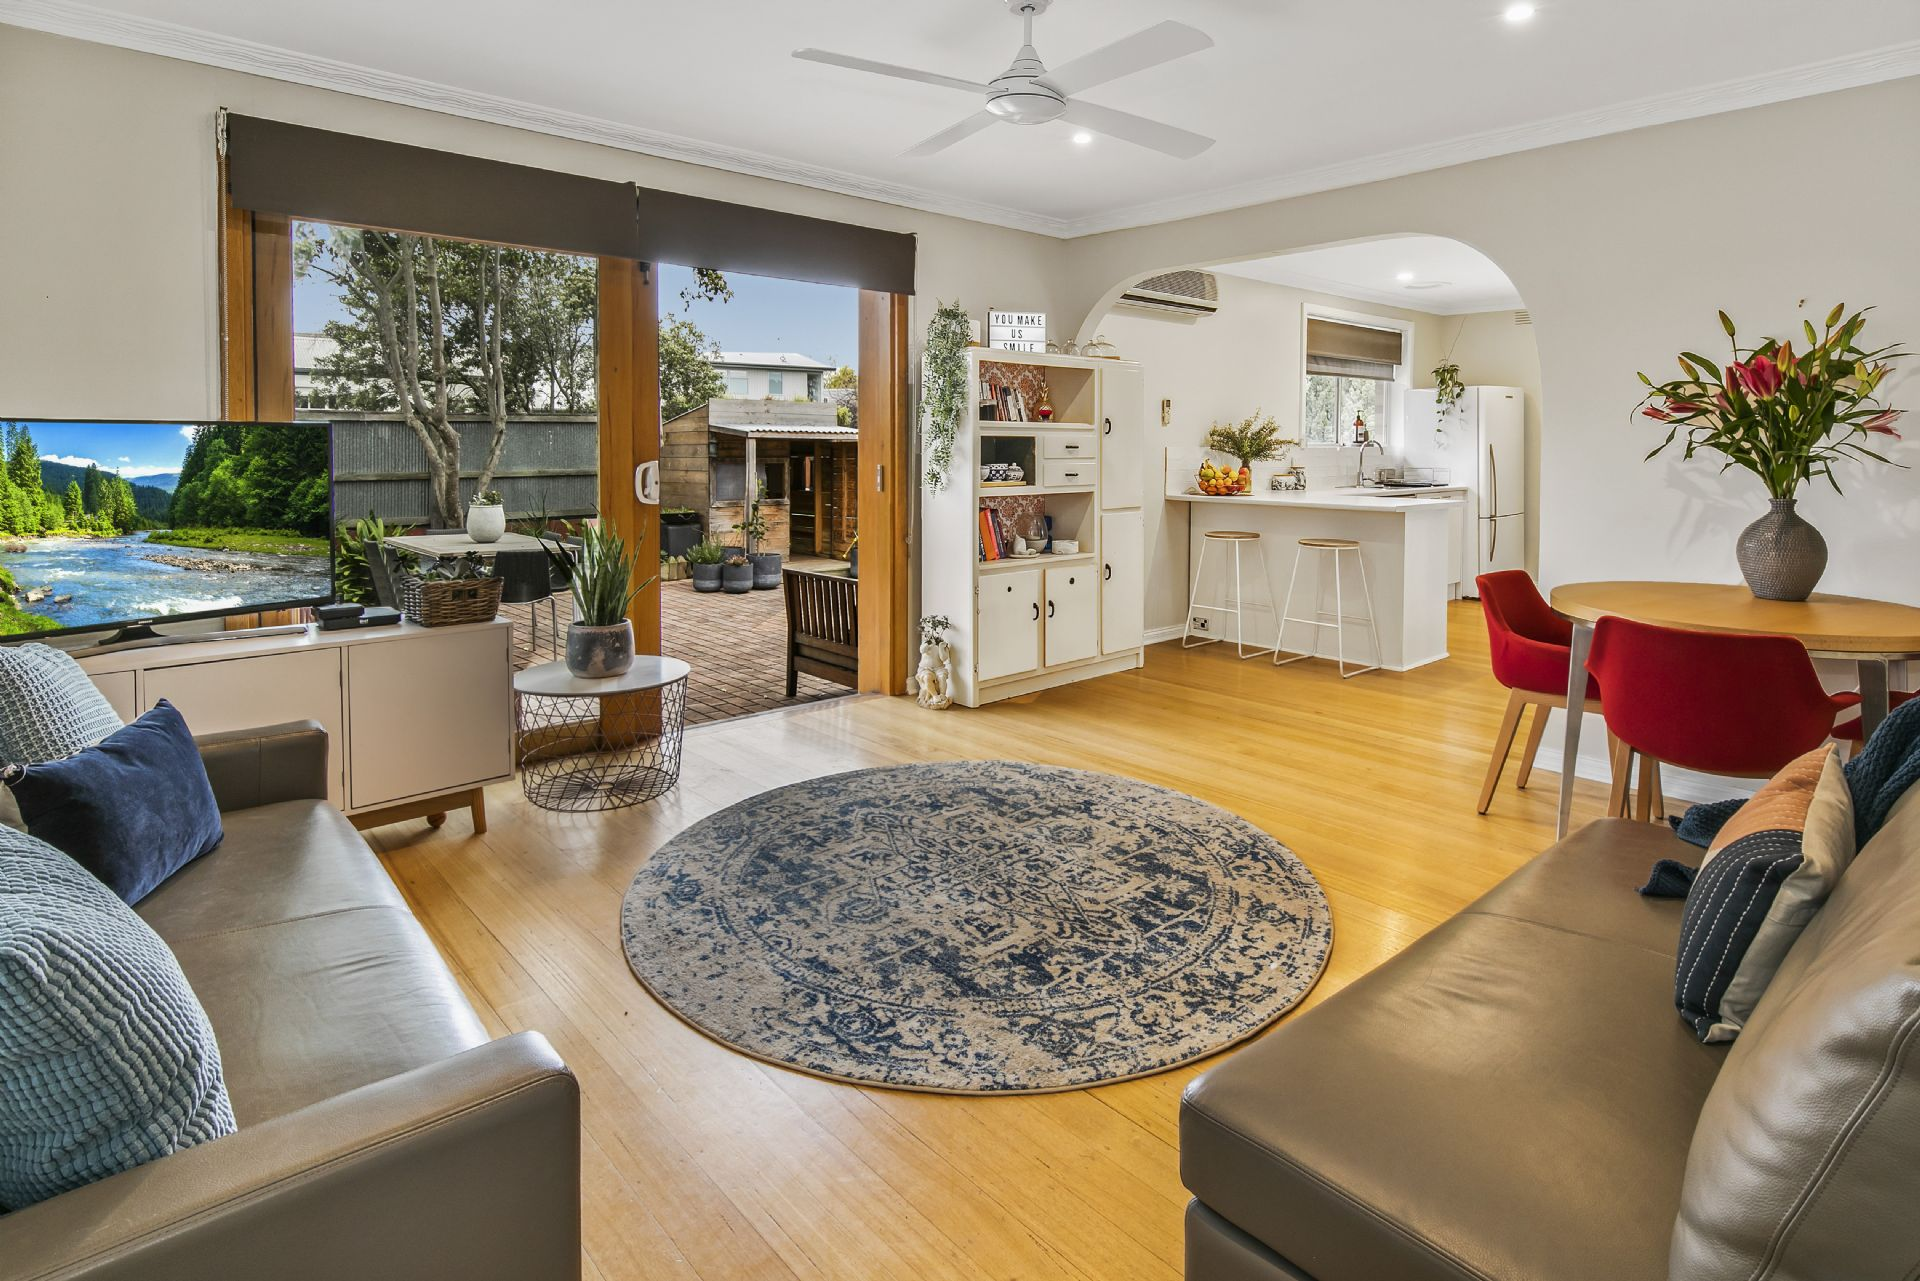 1/12 Separation Street, MORNINGTON, VIC, 3931 - Image